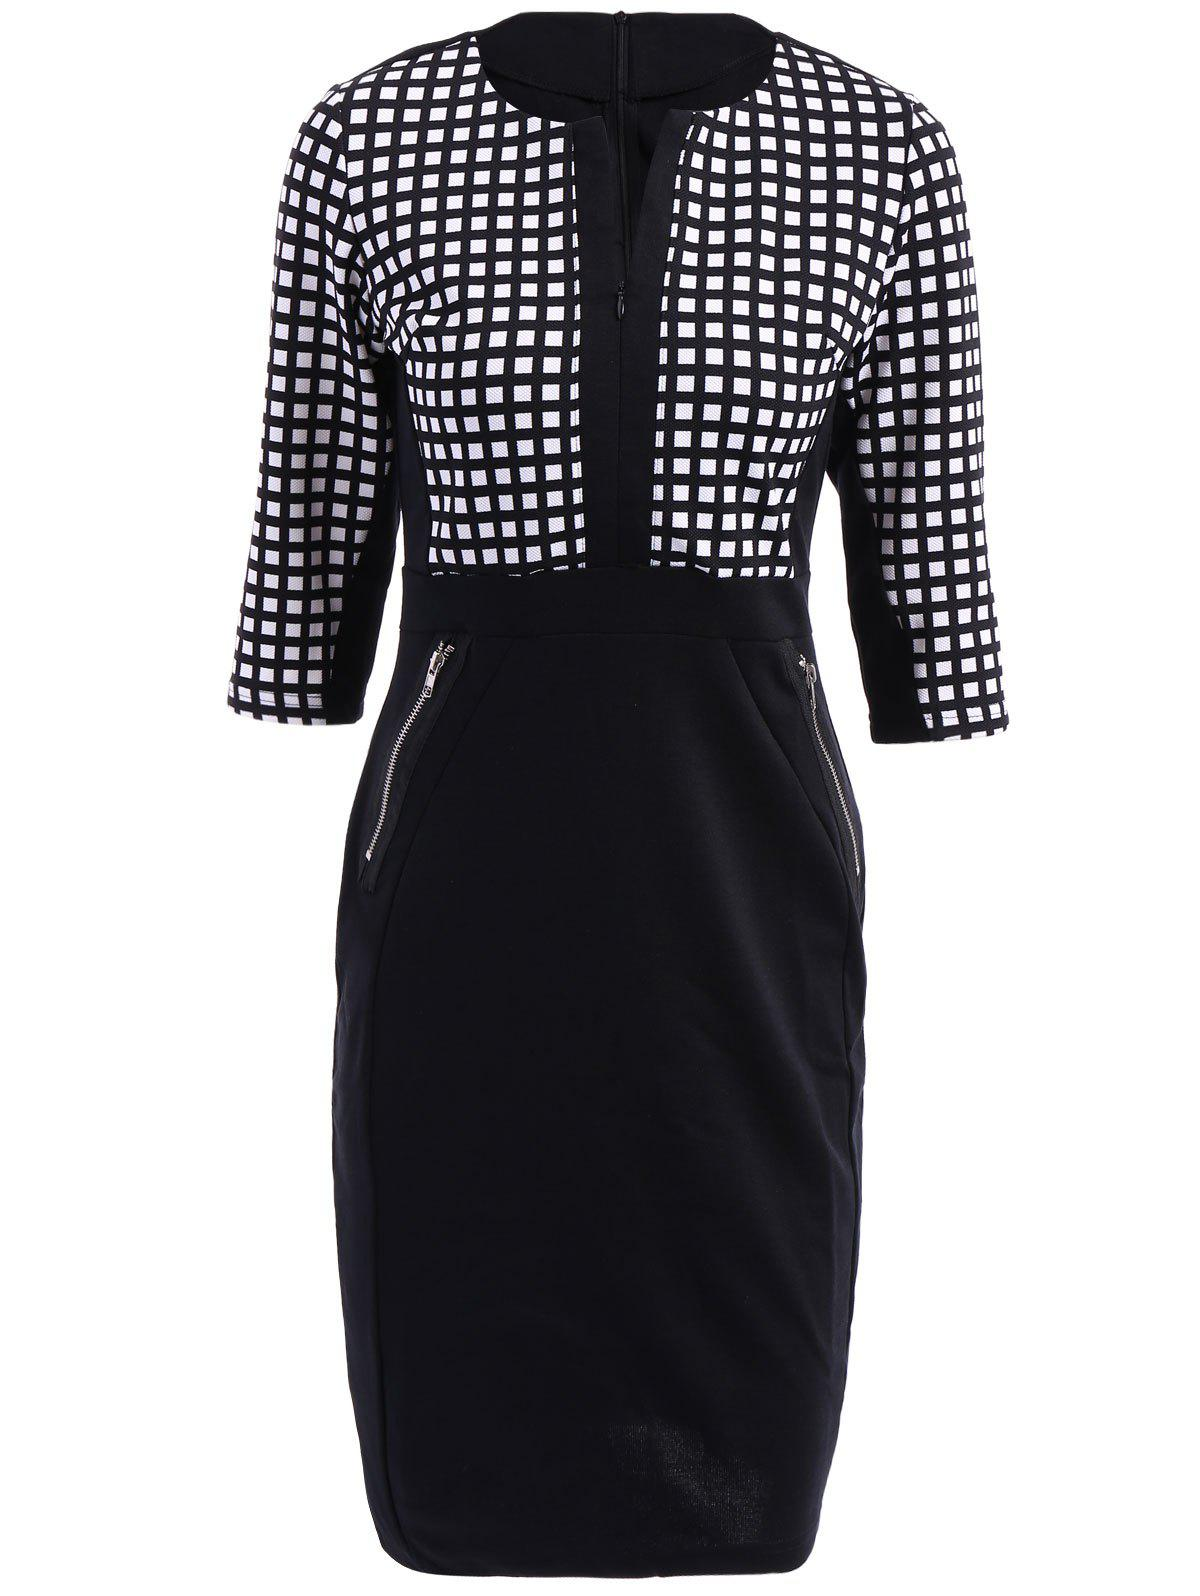 OL Style V-Neck Checked Print 3/4 Sleeve Women's Pencil Dress - COLORMIX M